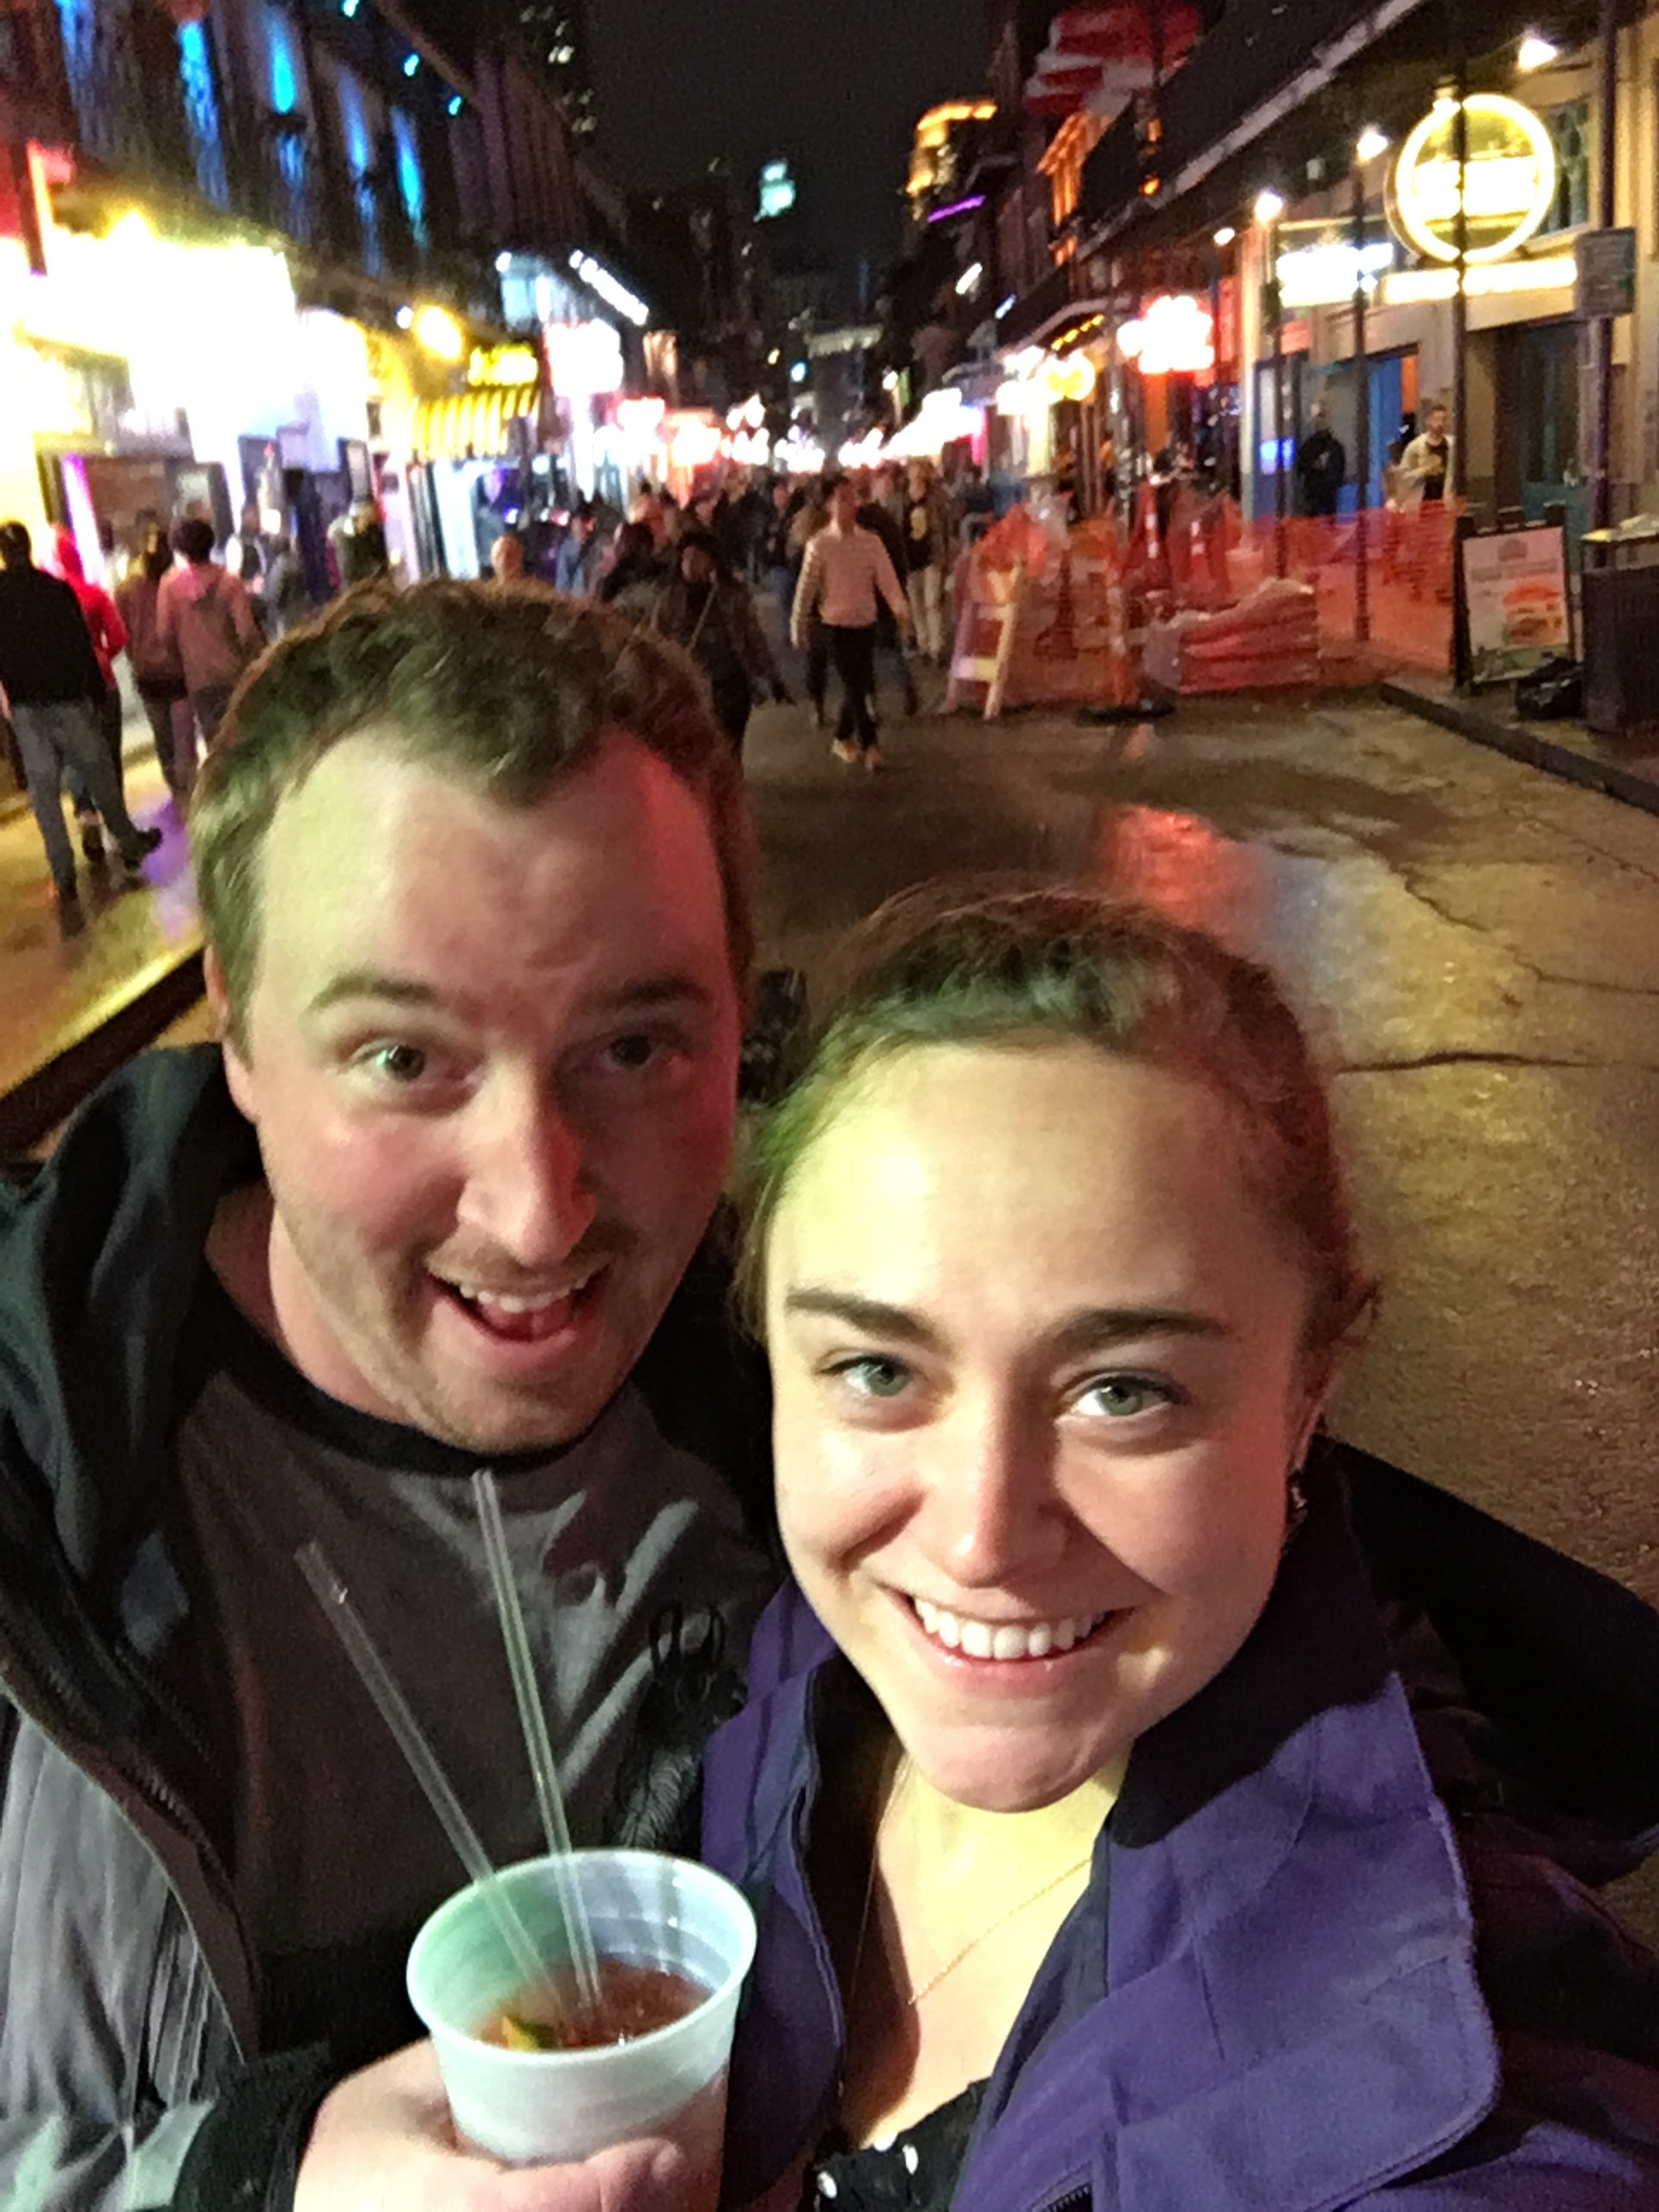 Bourbon Street in the rain on the way home